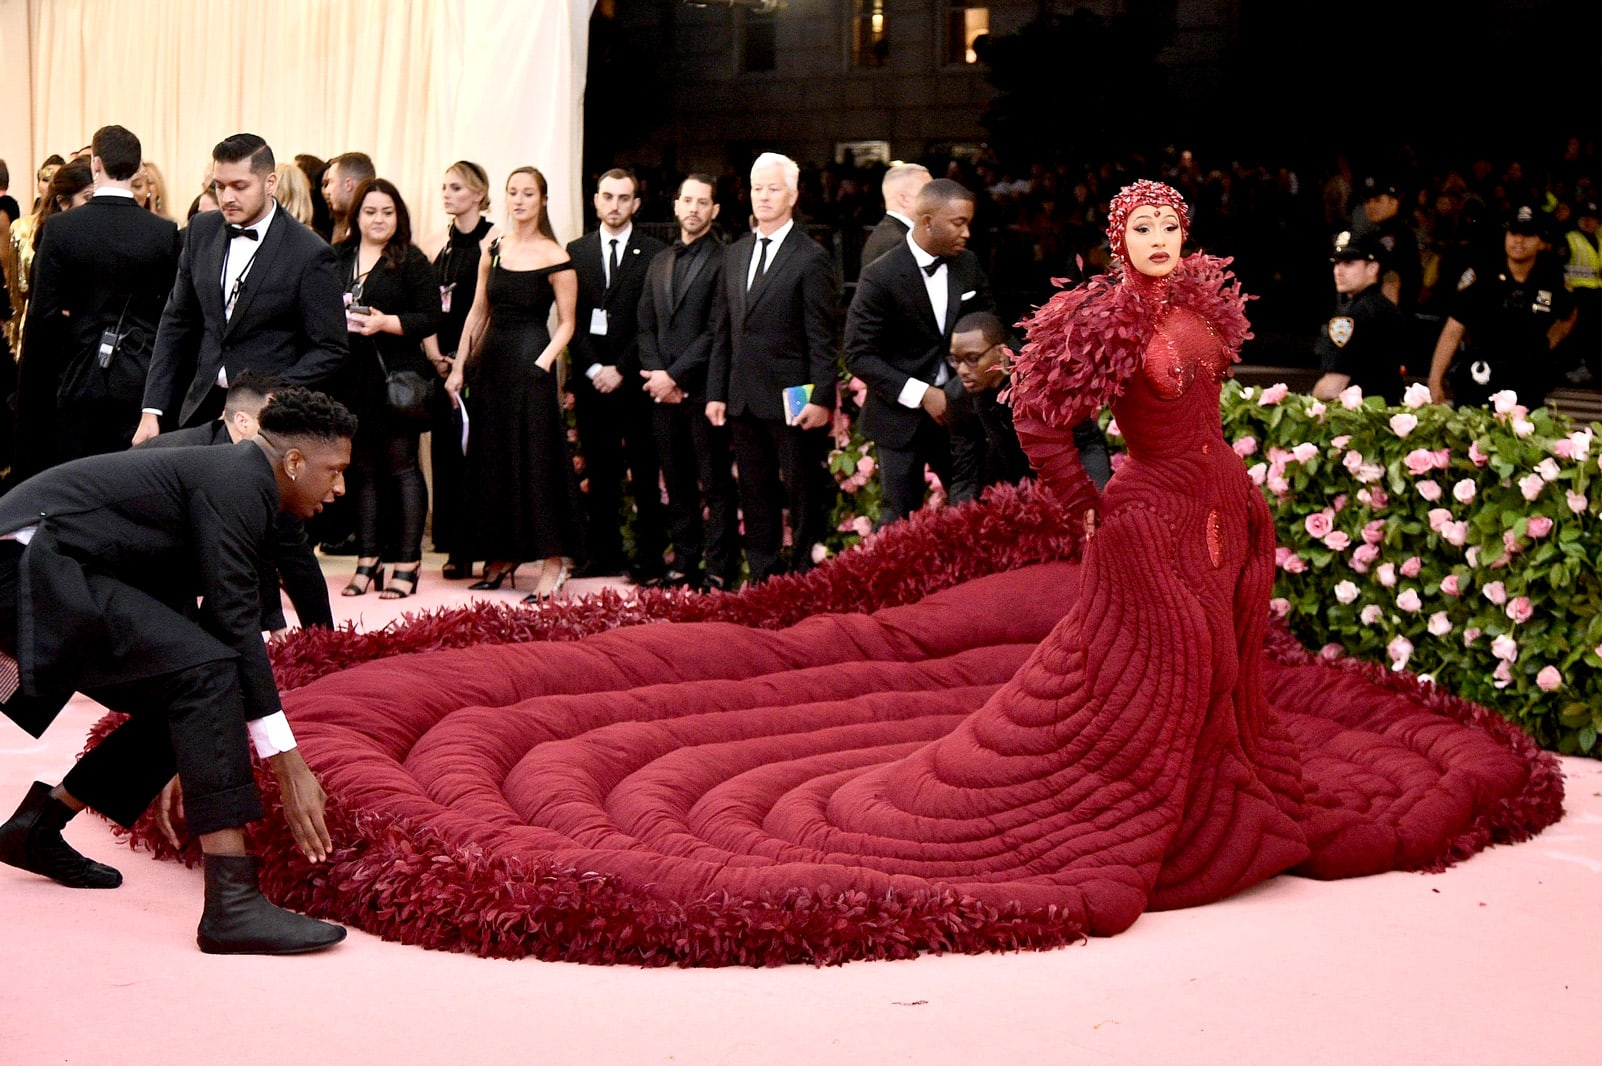 Cardi B at the Met Ball 2019